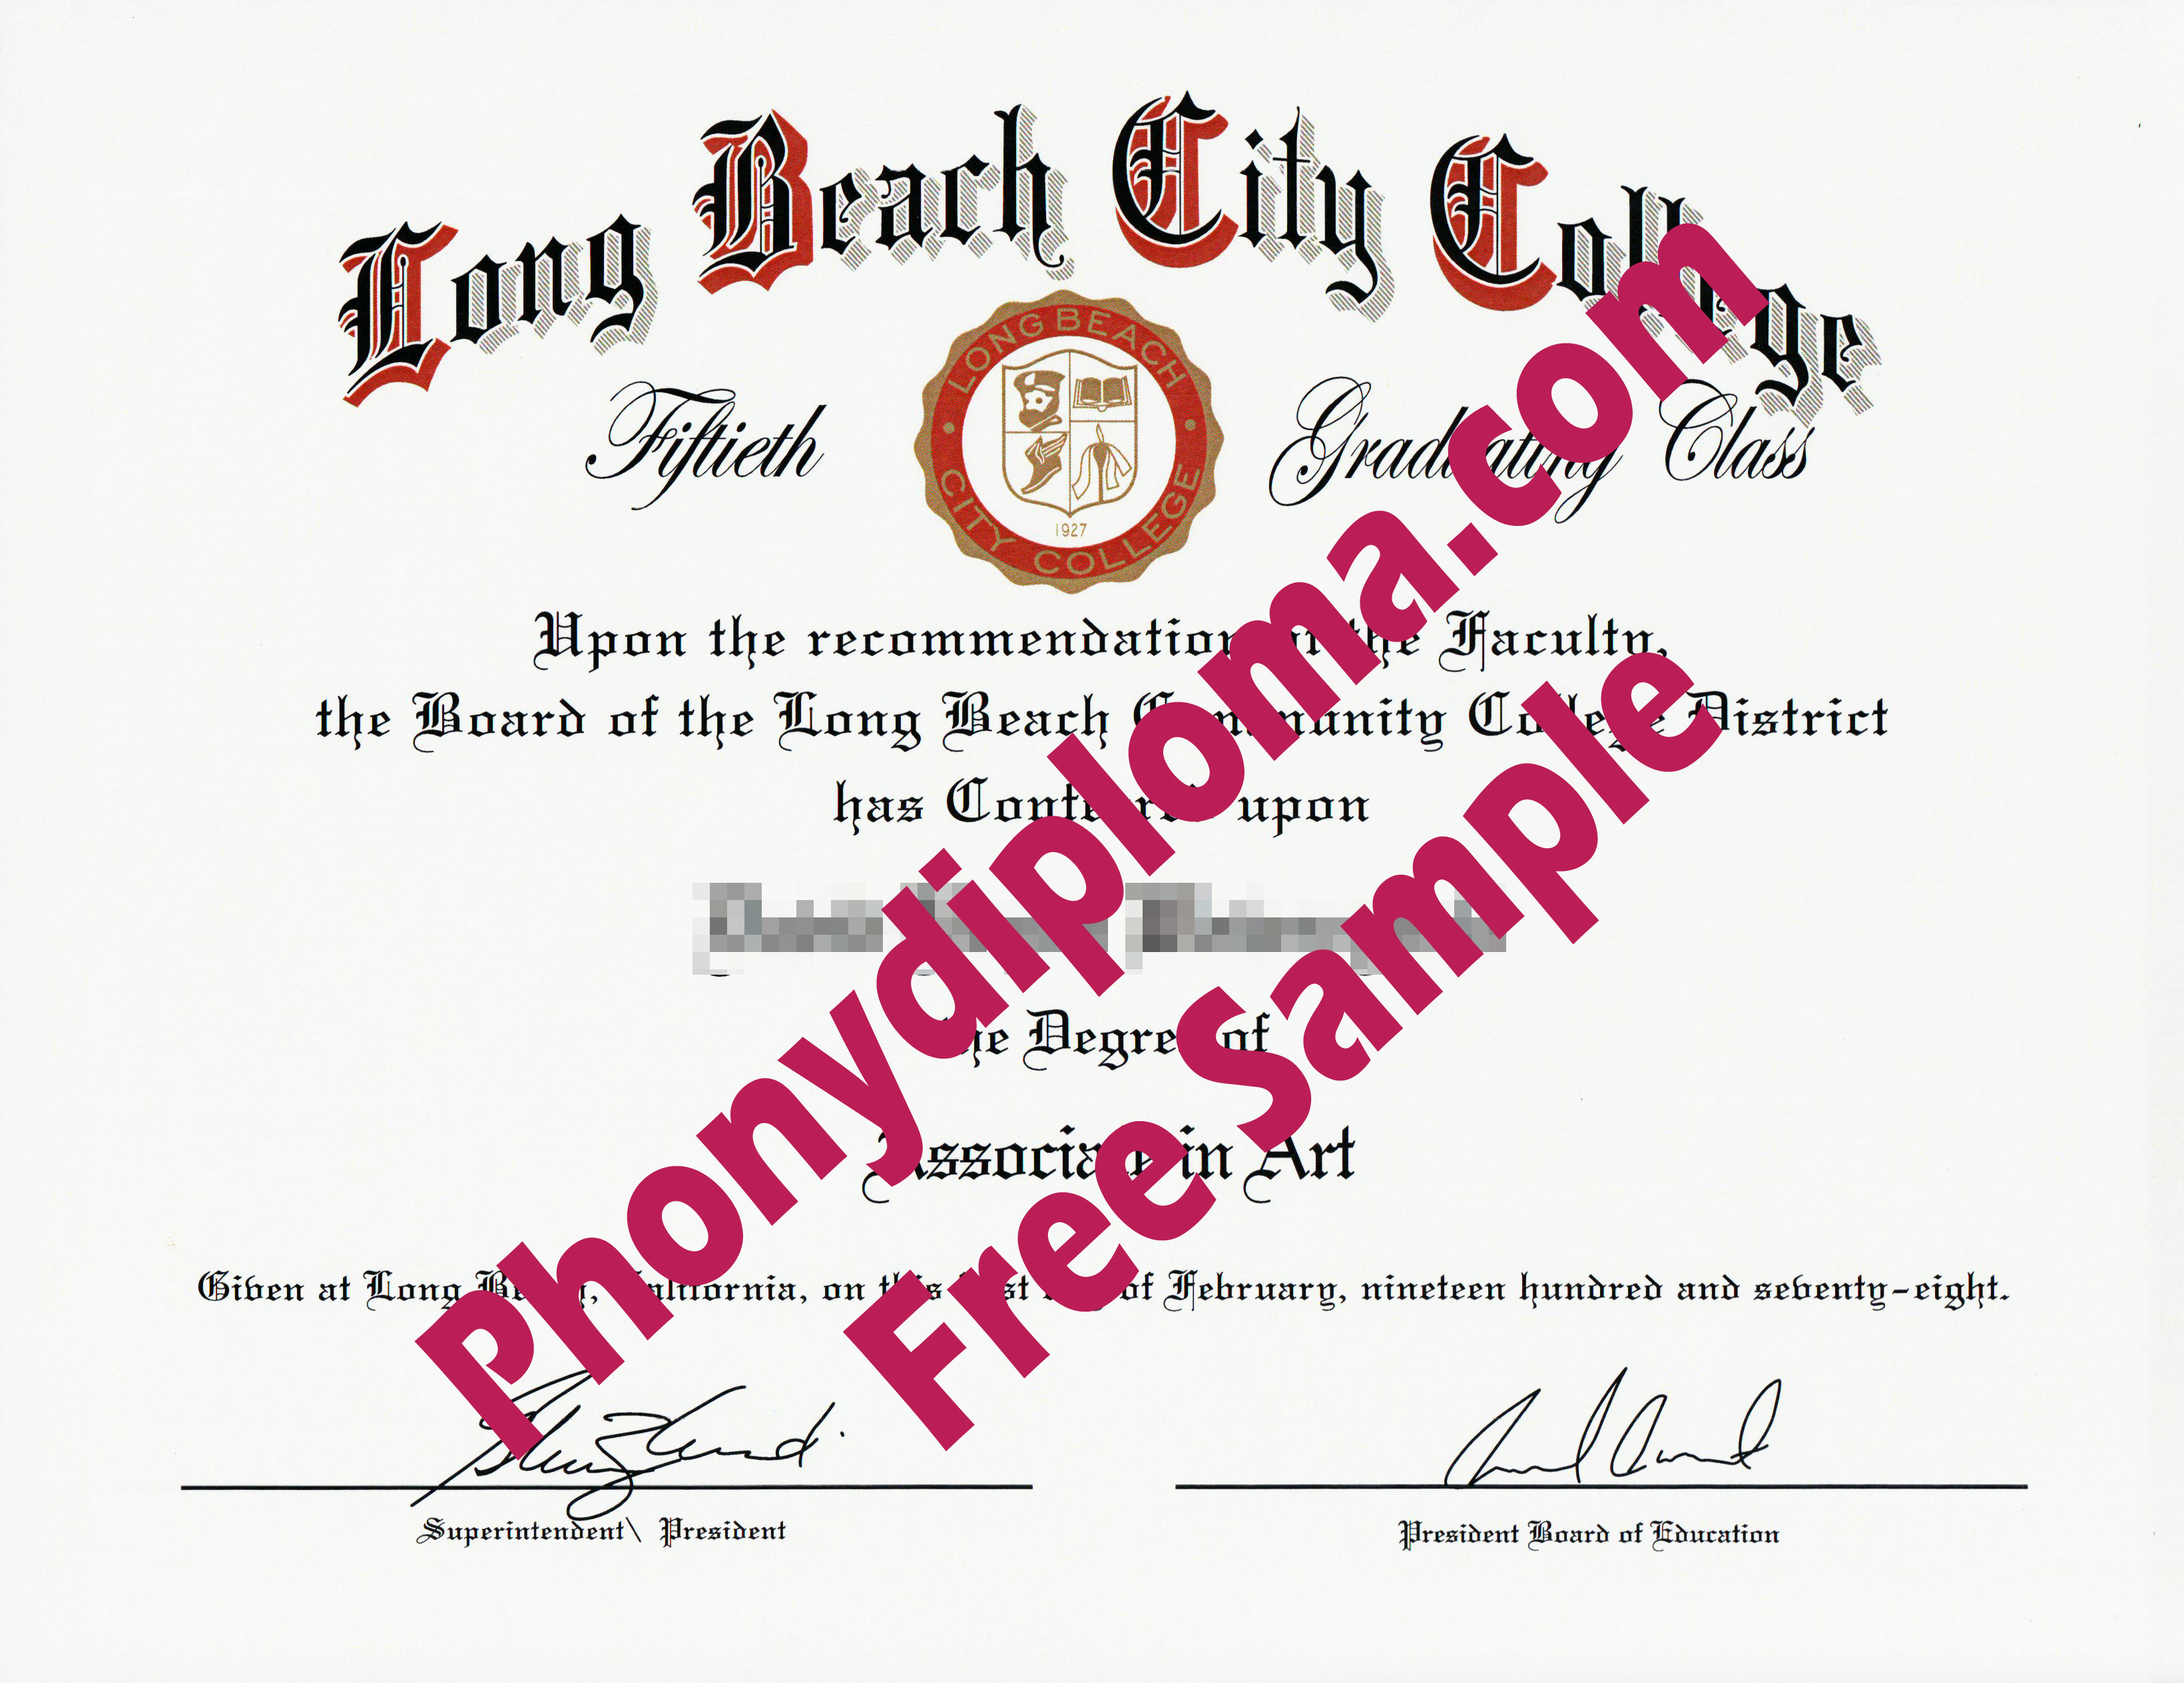 Long Beach City College Ca Free Sample From Phonydiploma